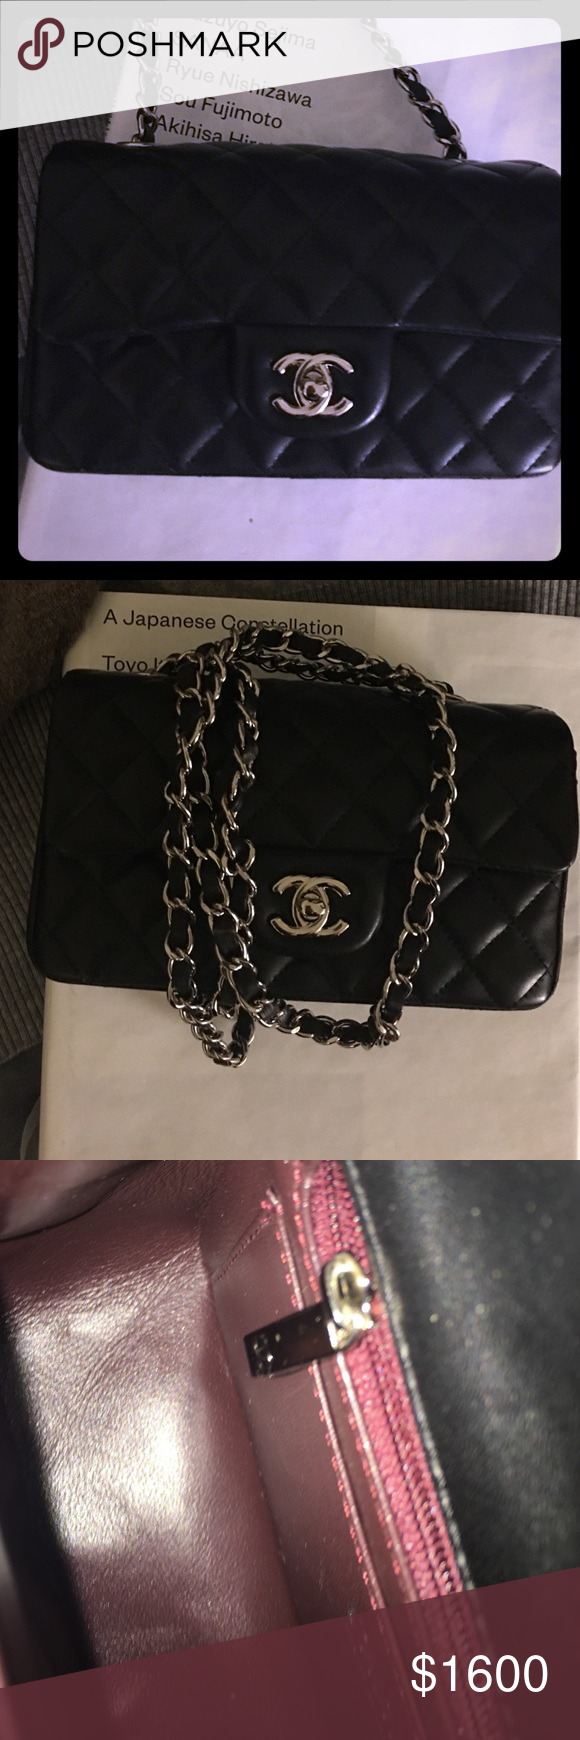 chanel 10218184. chanel bag ser number 10218184 chanel bags crossbody a